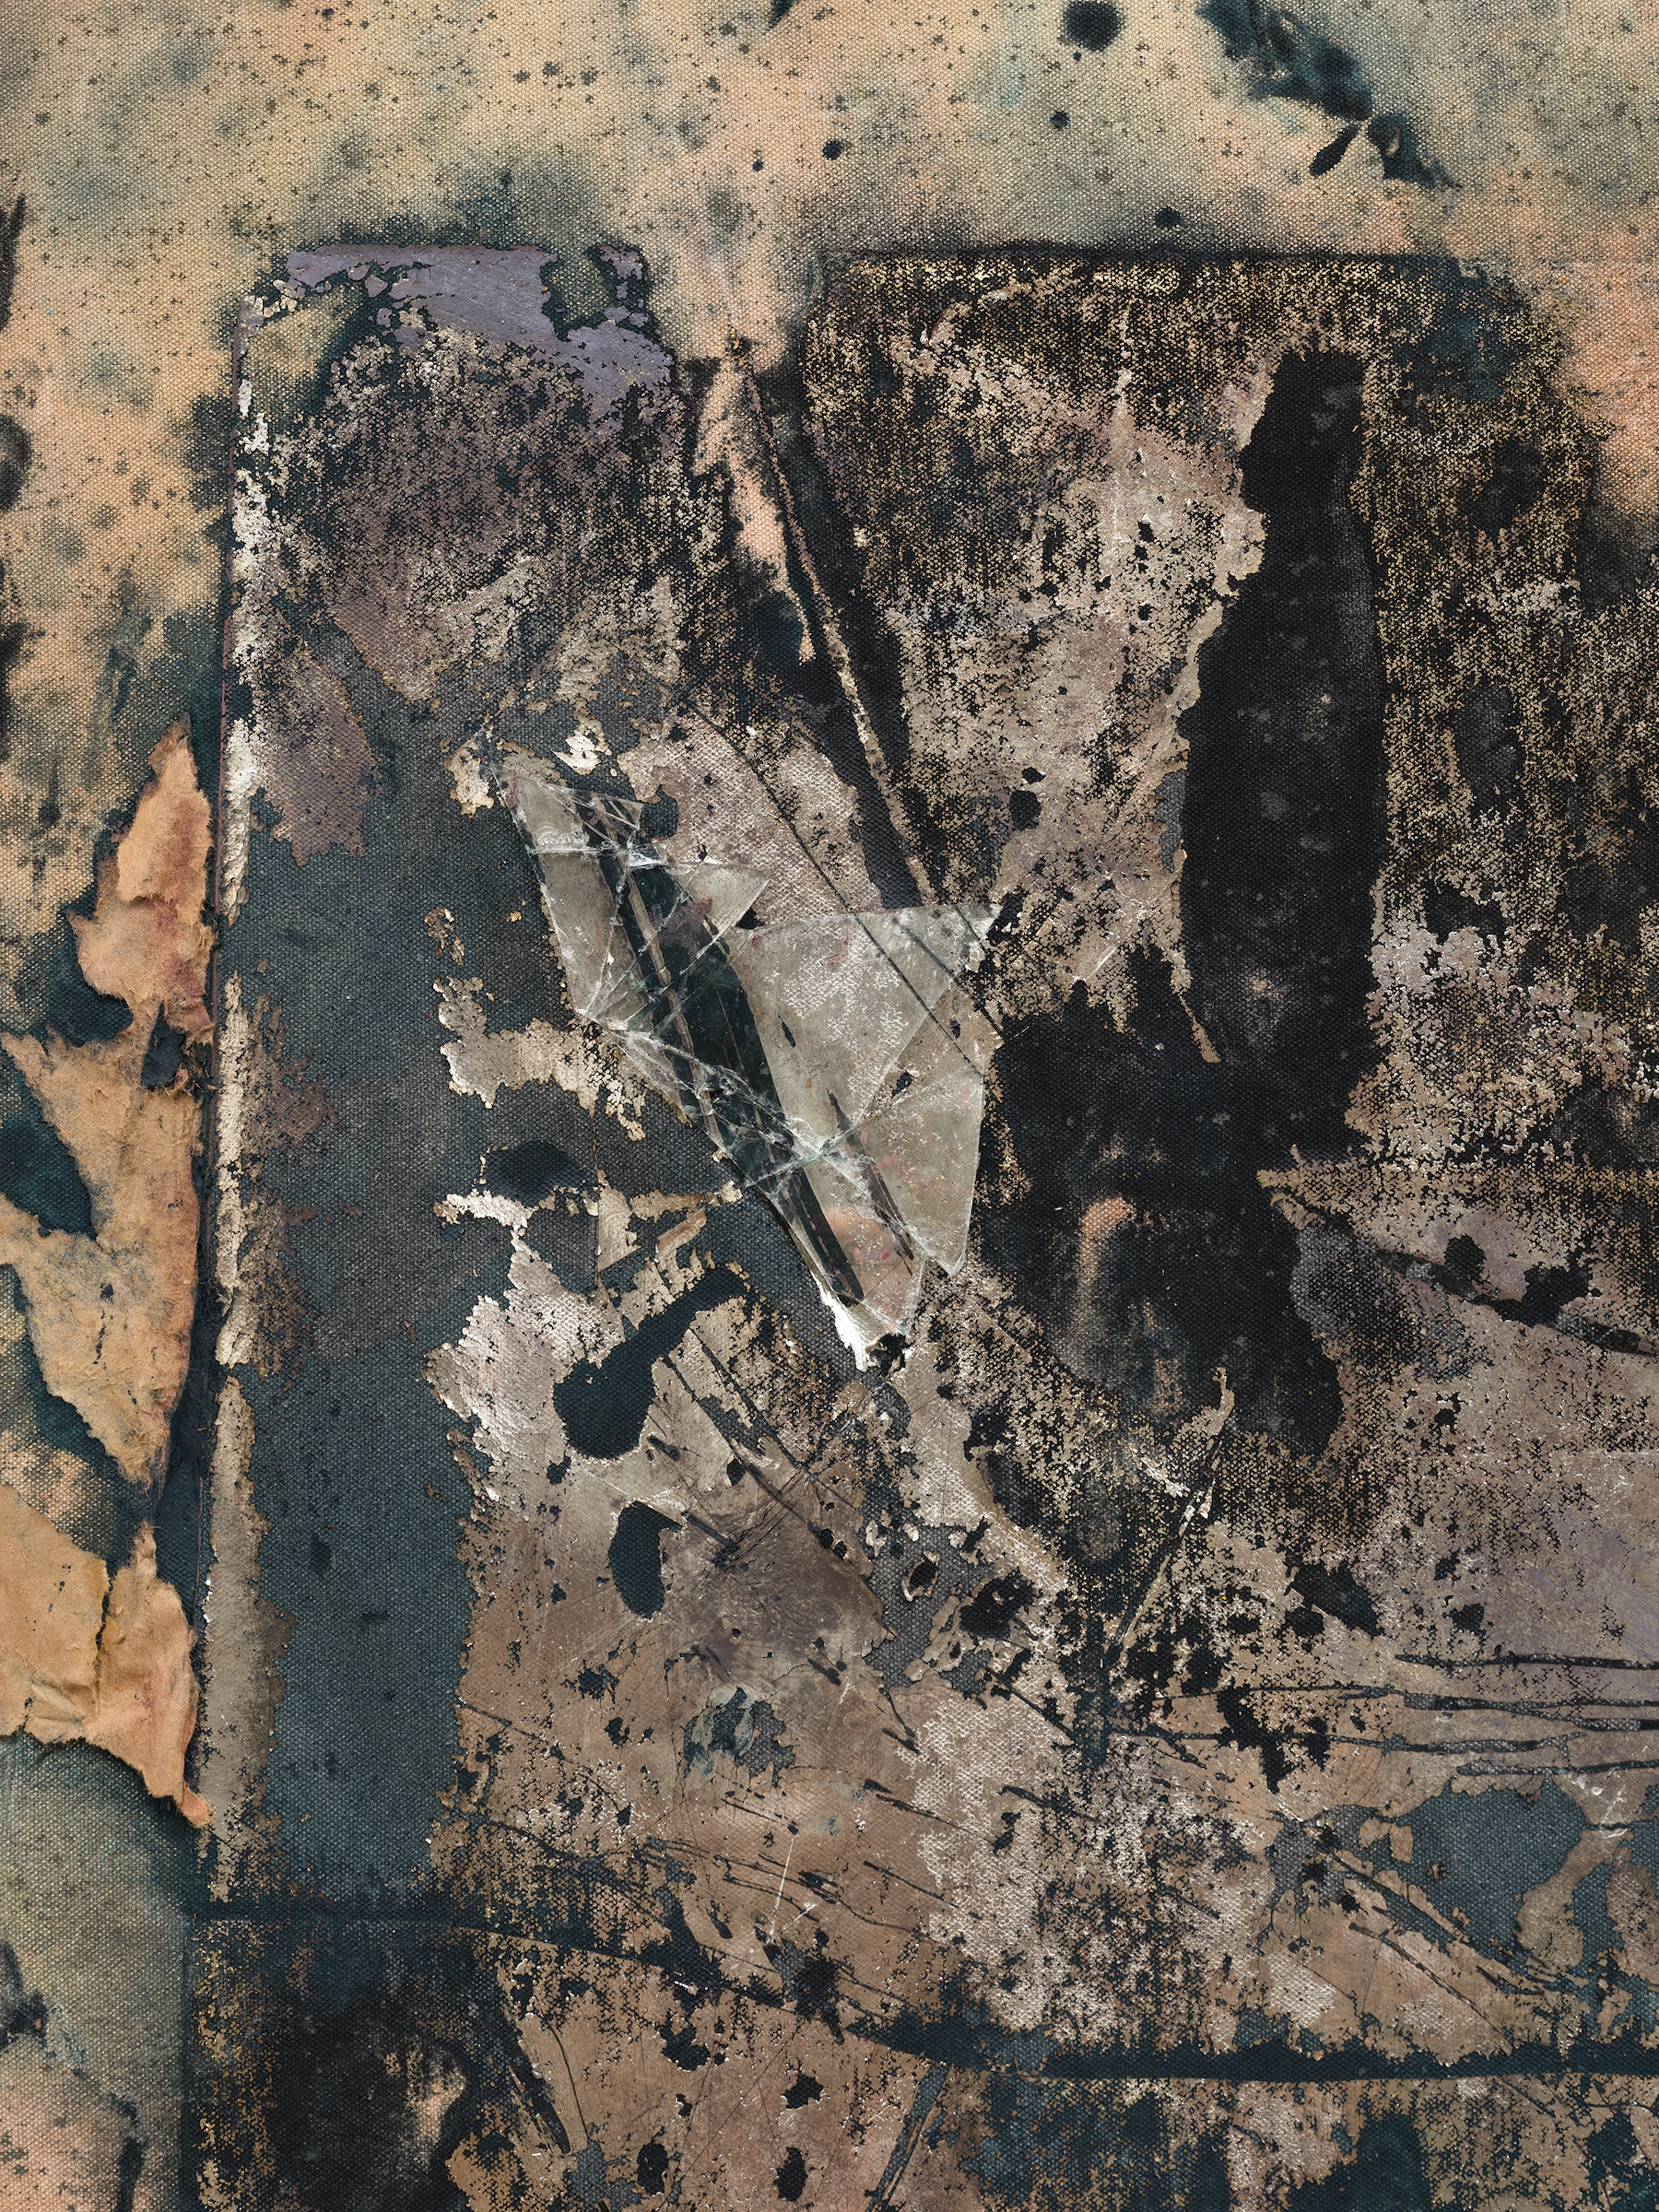 """Edgar Arceneaux """"Skinning the Mirror #13,"""" 2021 Silver nitrate, acrylic paint, paper, and glass on canvas 73 ³⁄₄"""" x 58"""" x 2"""" [HxWxD] (187.32 x 147.32 x 5.08 cm) Inventory #ARC645 Courtesy of the artist and Vielmetter Los Angeles Photo credit: Jeff McLane / Xiaoyue Zhang"""